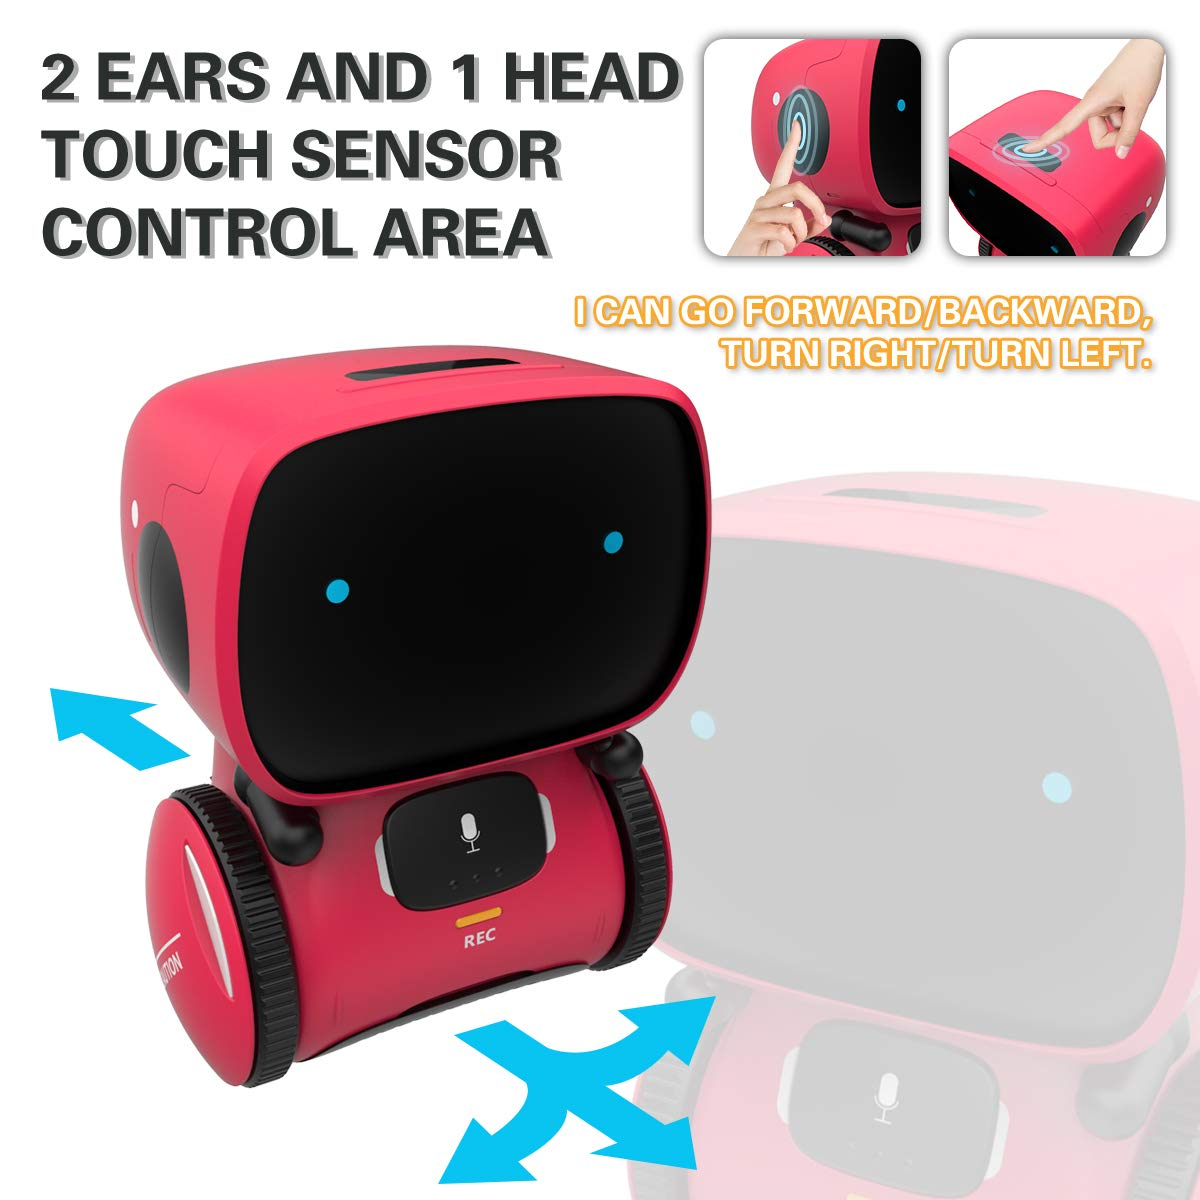 98K Kids Robot Toy, Smart Talking Robots, Gift for Boys and Girls Age 3+, Intelligent Partner and Teacher, with Voice Controlled and Touch Sensor, Singing, Dancing, Repeating by 98K (Image #2)